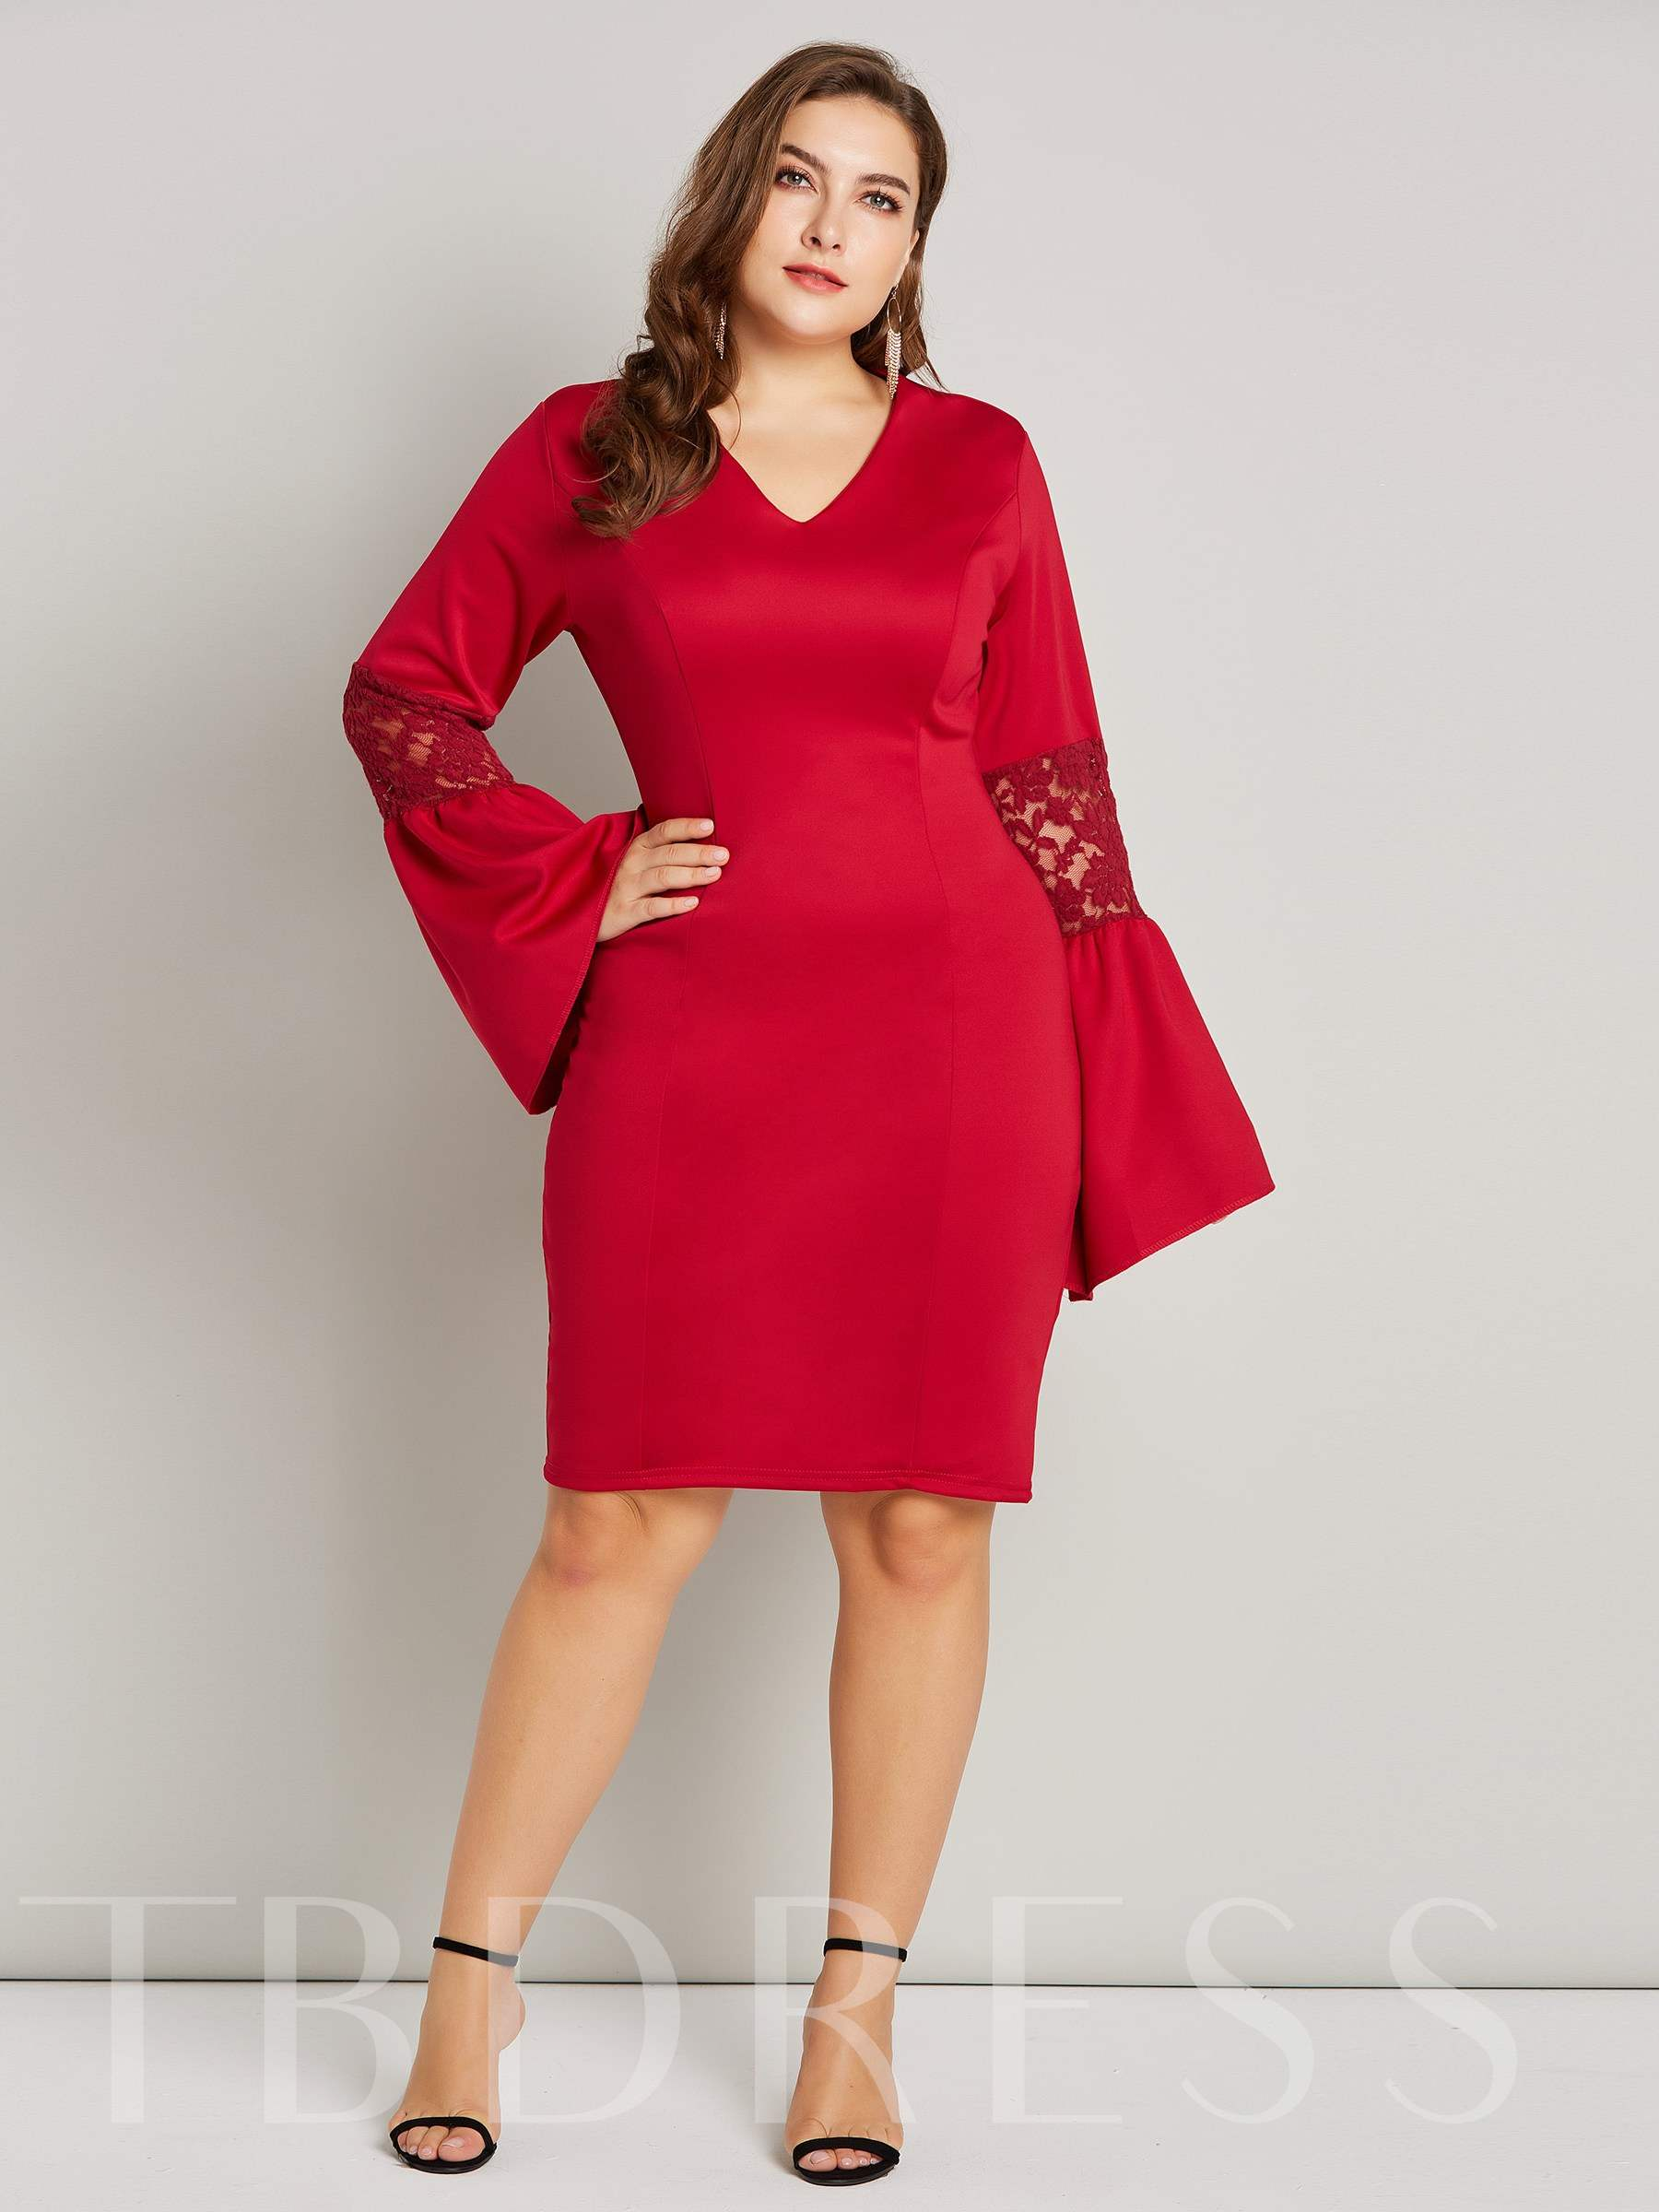 Buy Flare Sleeve V-Neck Women's Lace Dress, Plusee, 13456830 for $19.23 in TBDress store